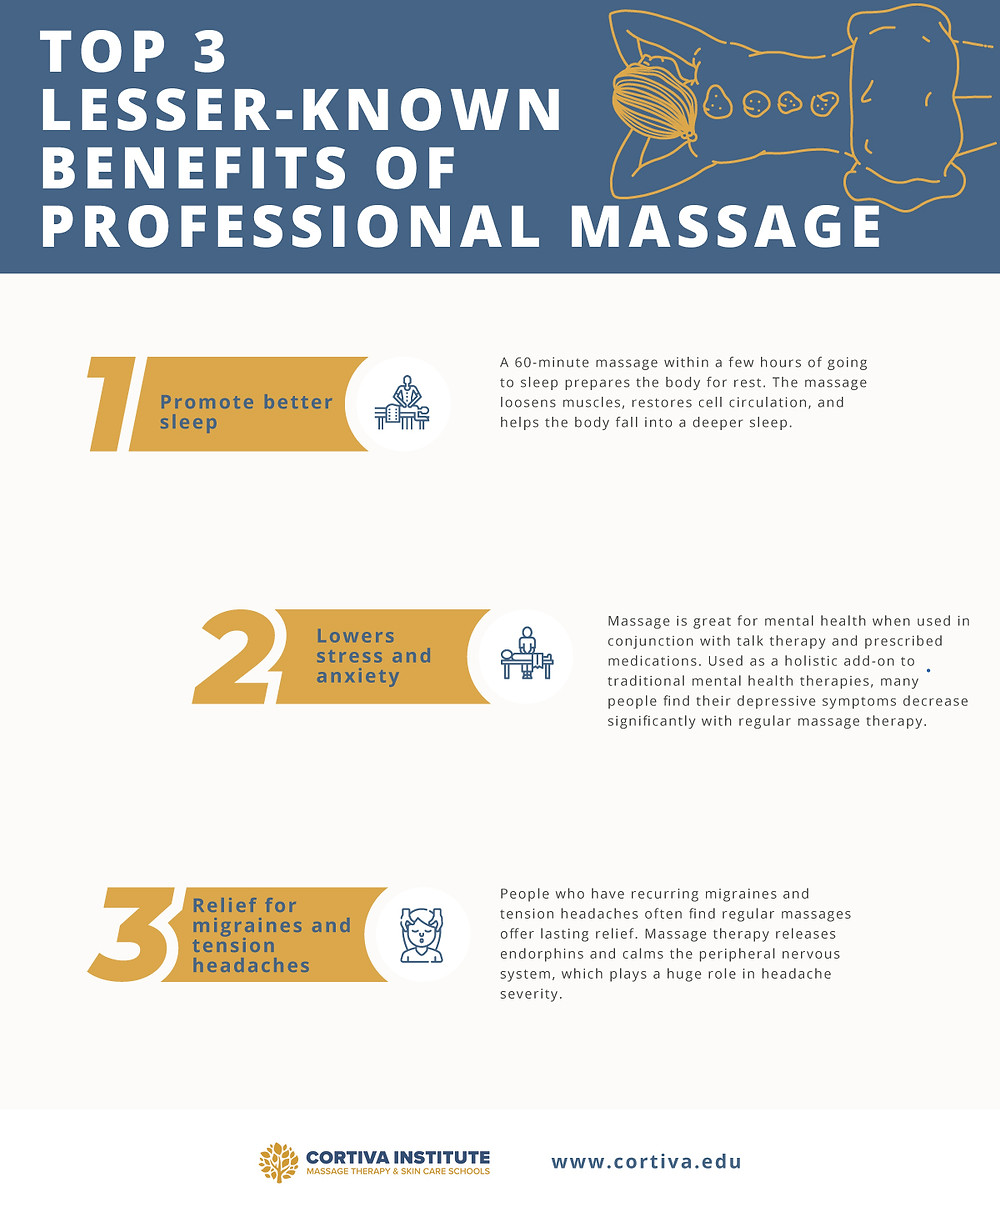 Top 3 Lesser-Known Benefits of Professional Massage